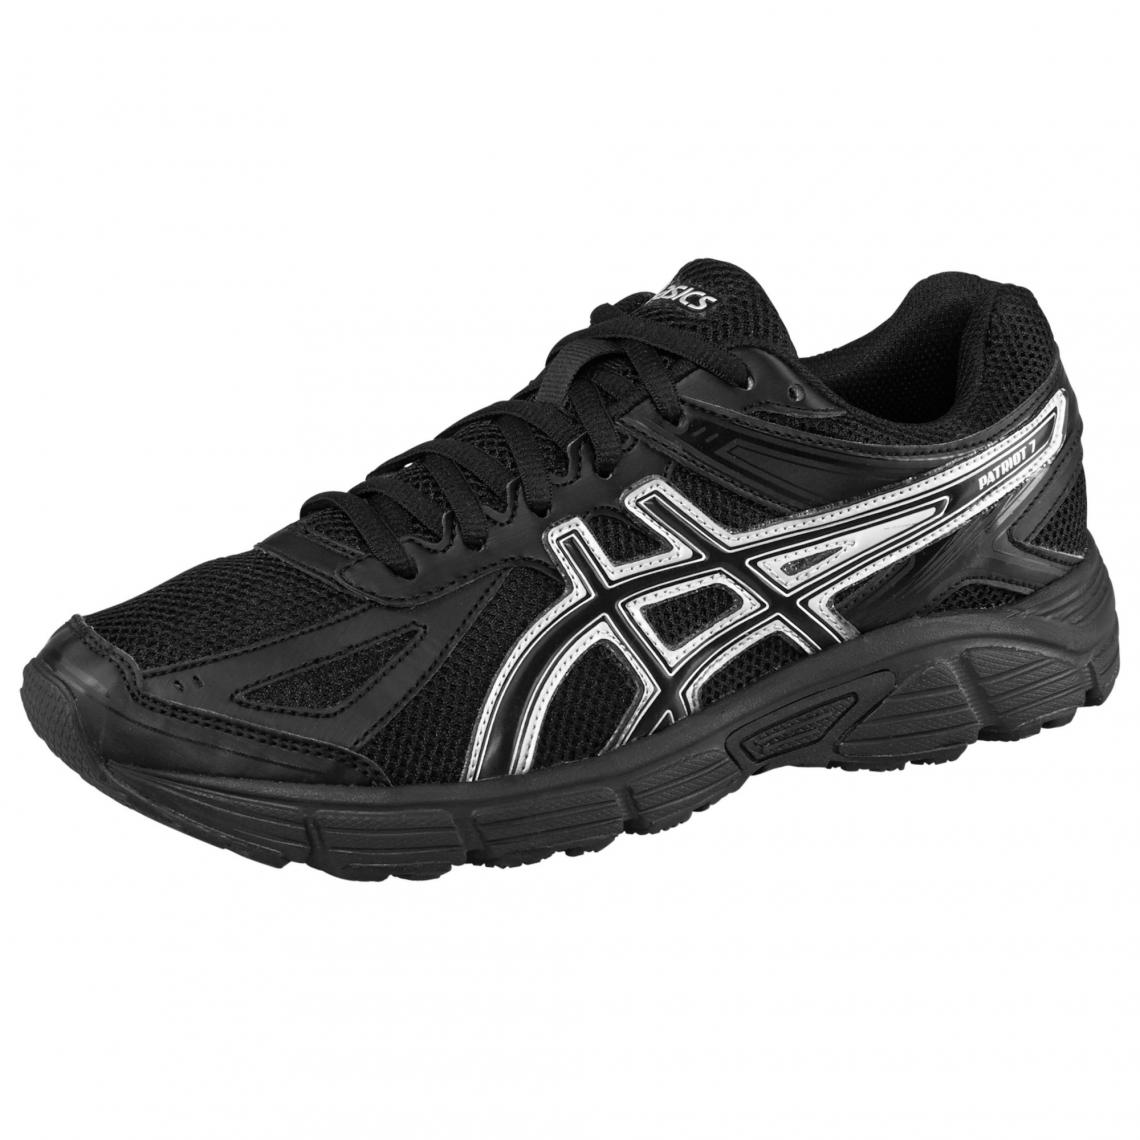 W Asics Suisses De Patriot 6 Running Chaussures Femme3 OP80knw